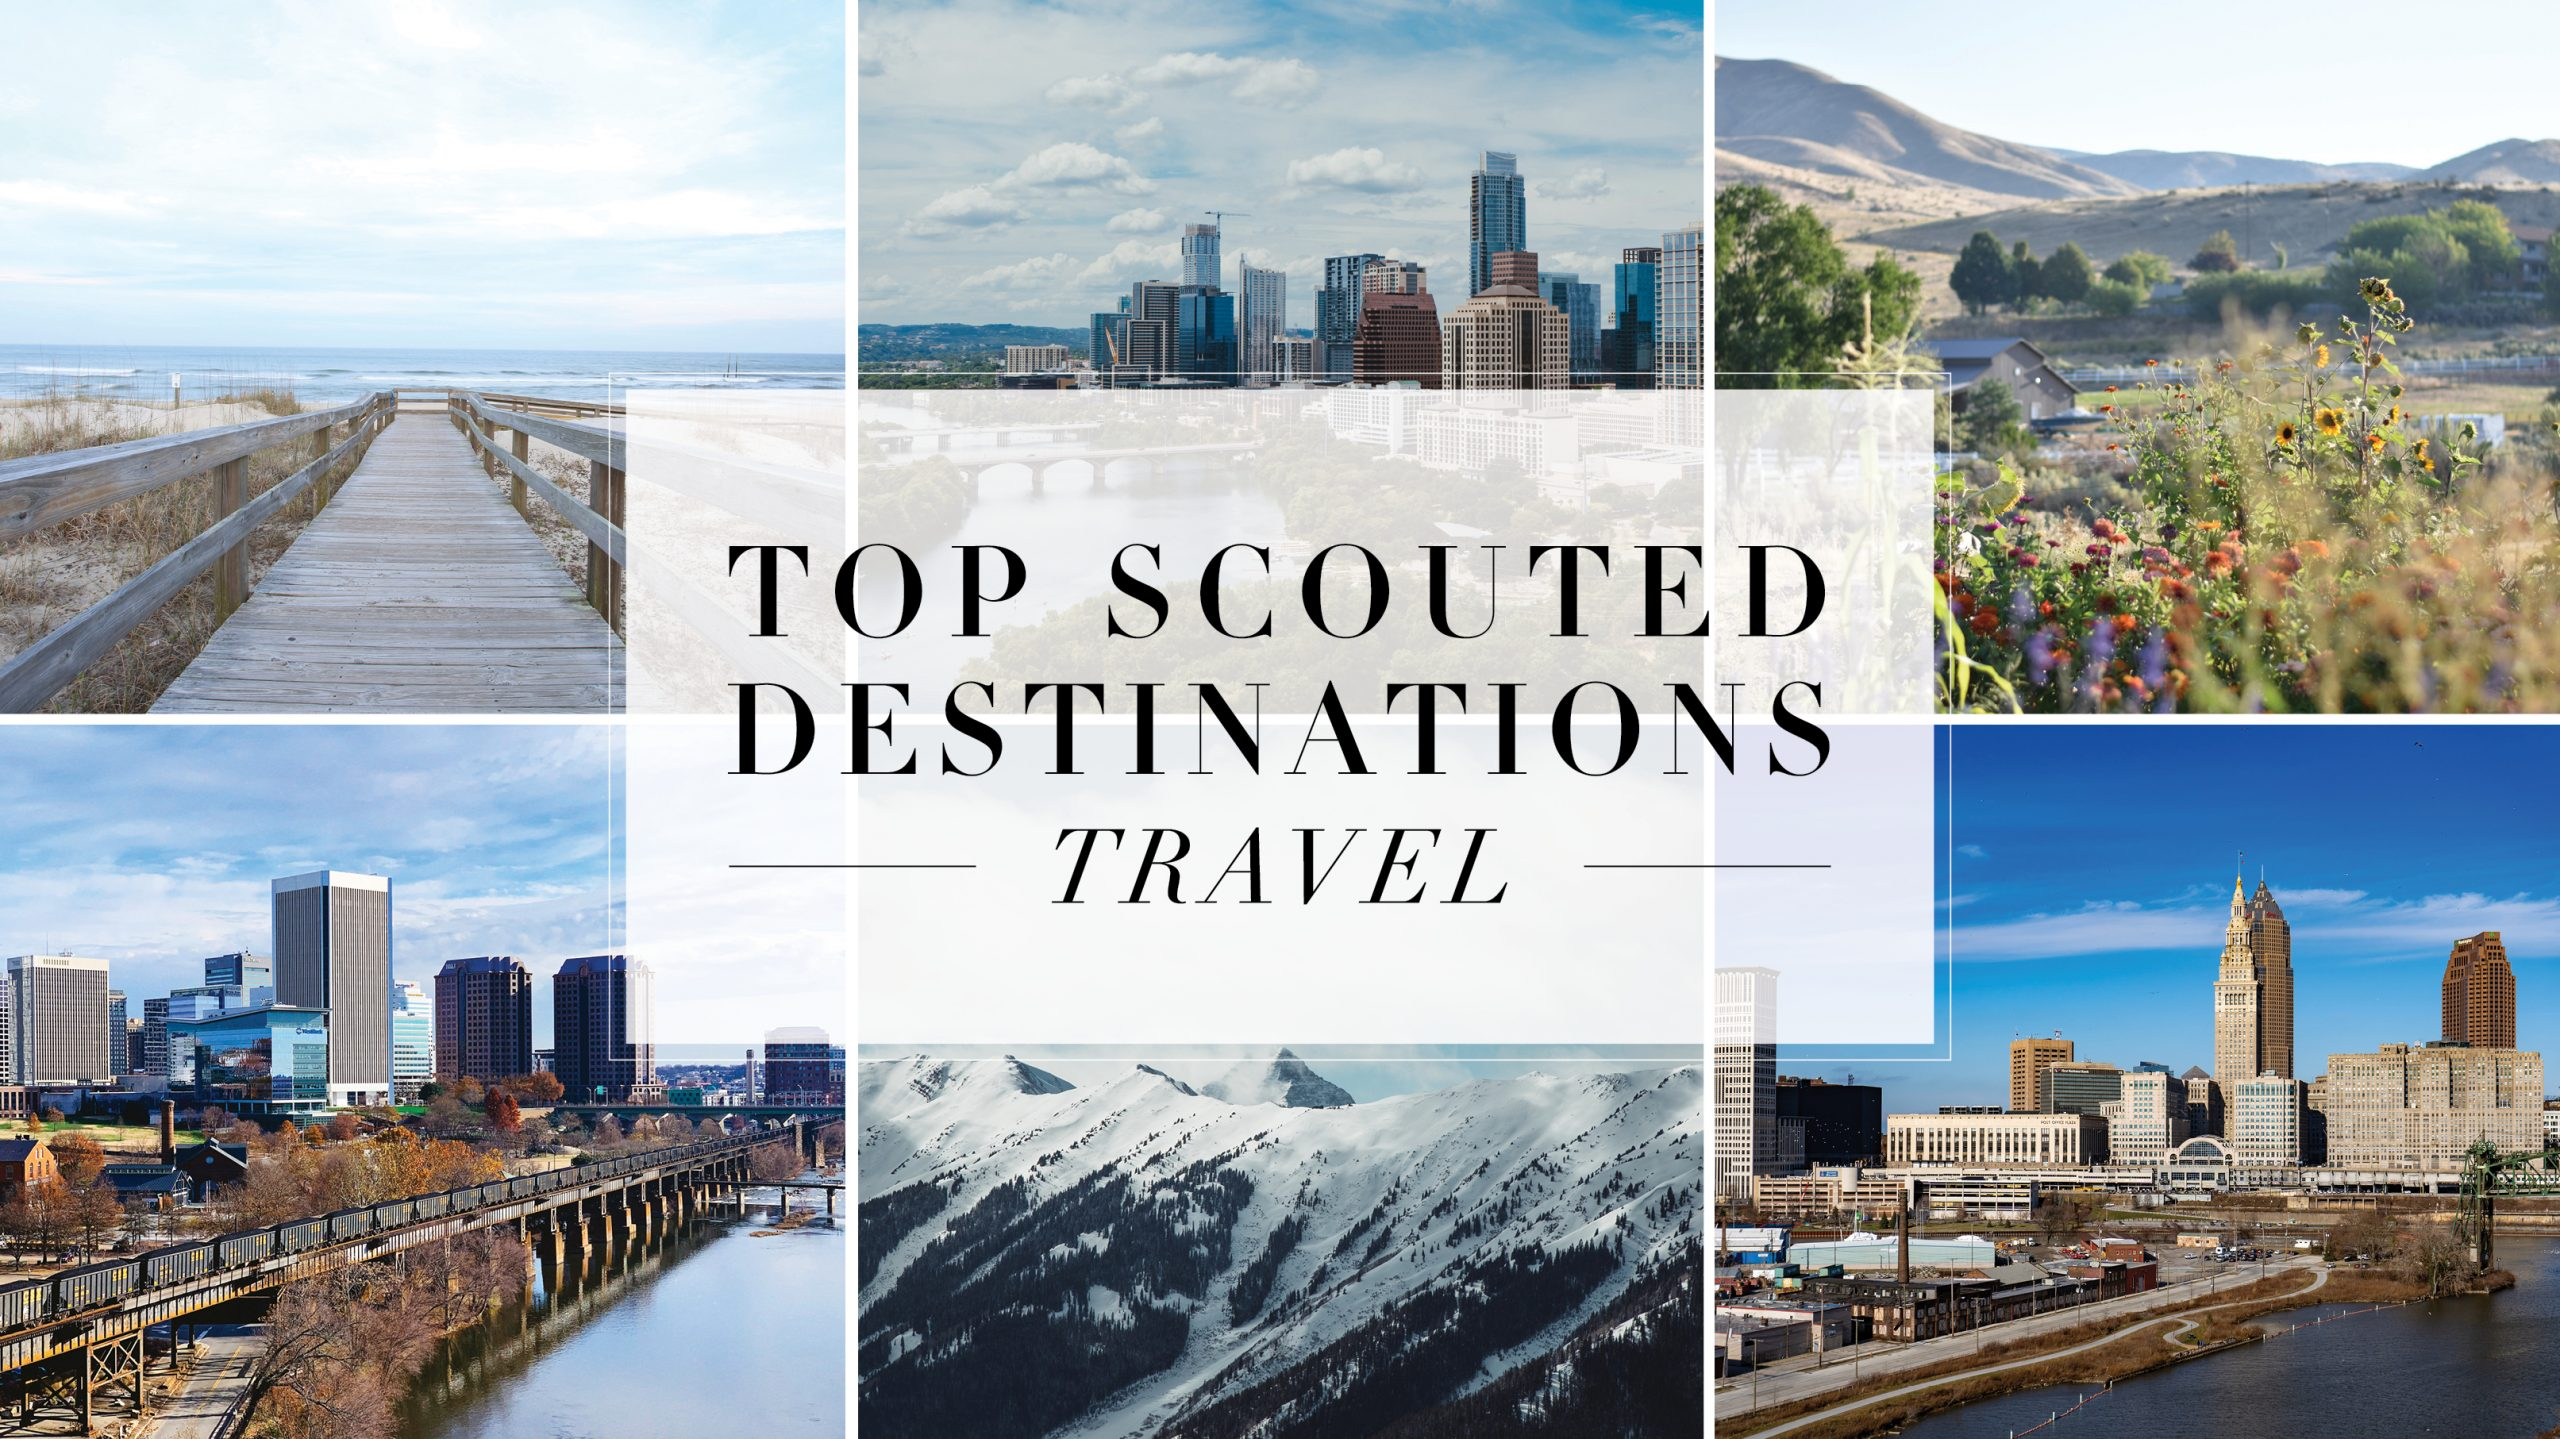 Top Scouted Destinations